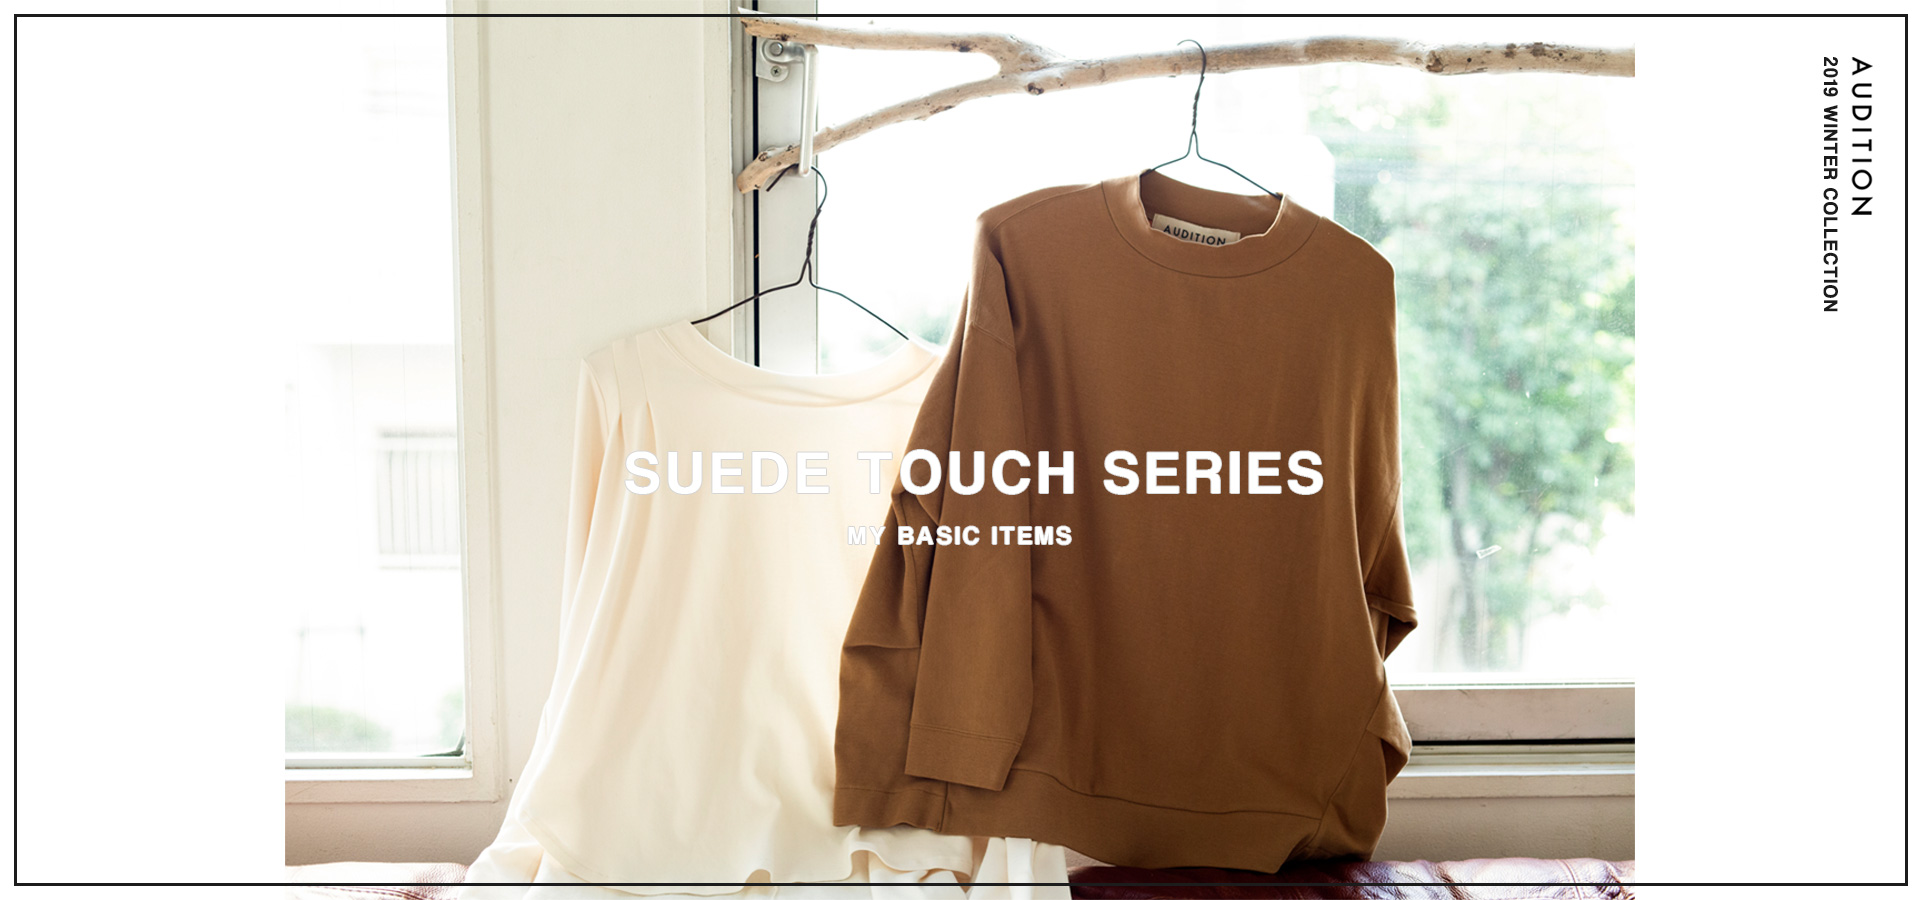 MY BASIC vol.2 - Suede touch series